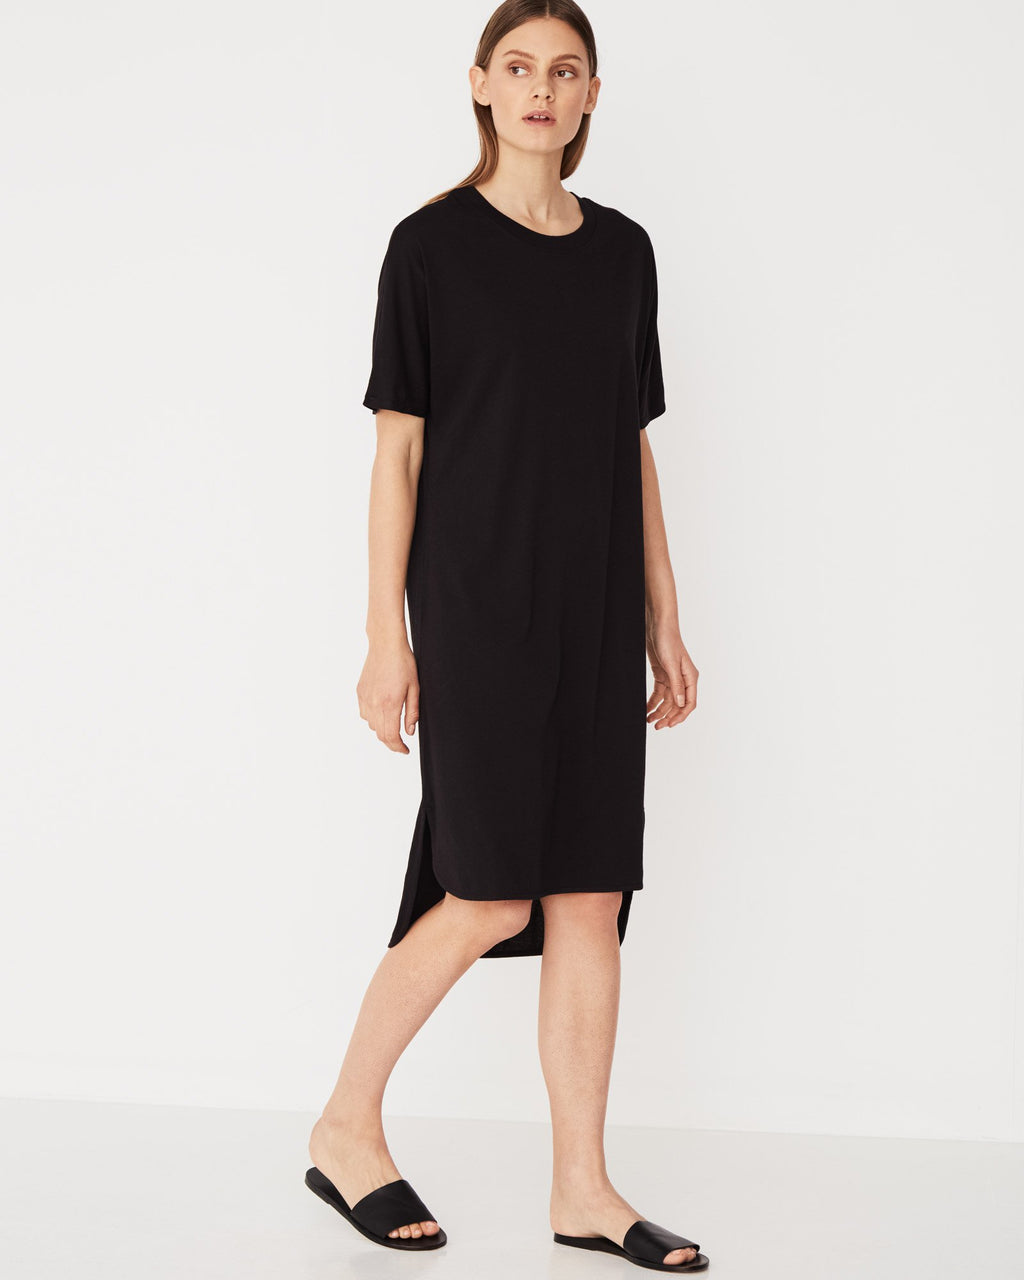 Oversized Tee Dress / Black